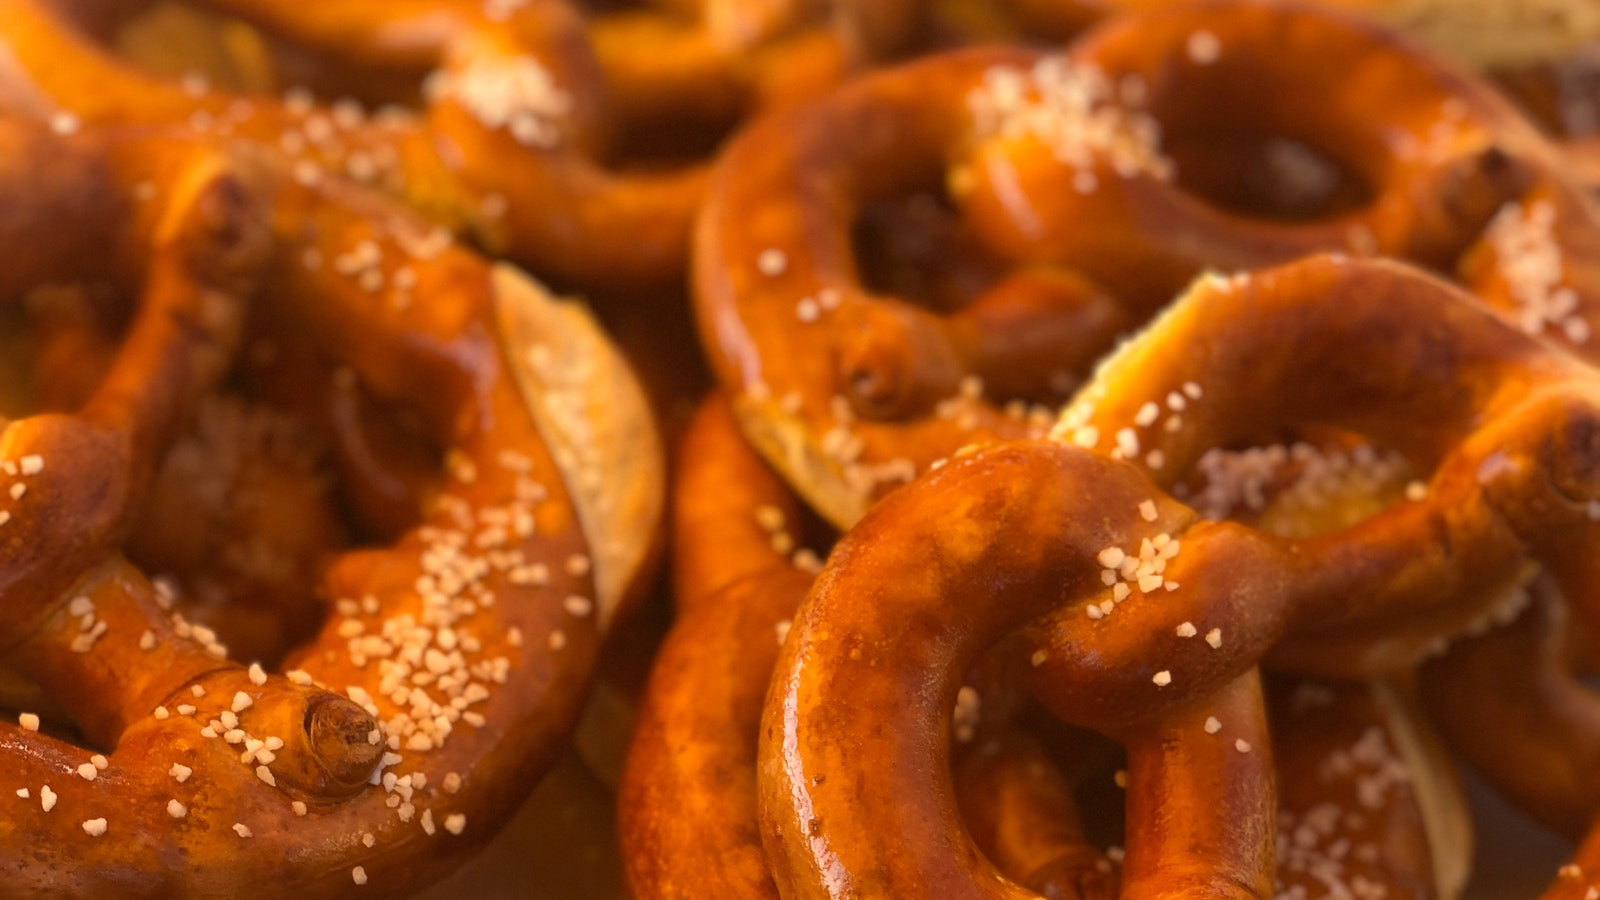 fresh pretzels are always coming out of the oven  onsite  on Sundays.